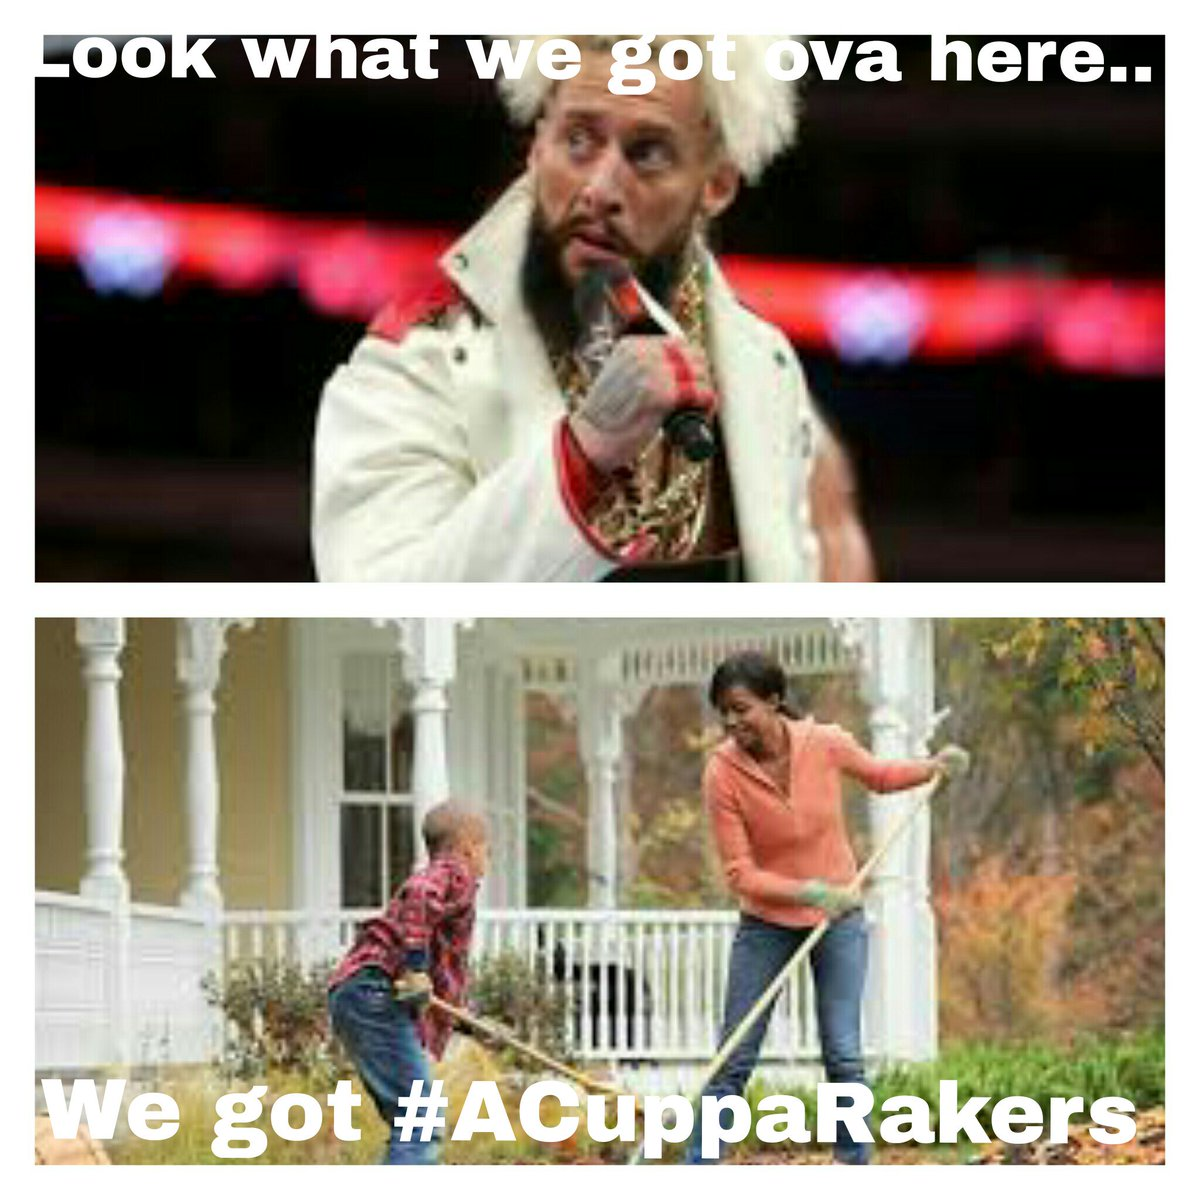 Funny Wrestling Pictures/Videos Thread | Page 6 | Wrestling Forum